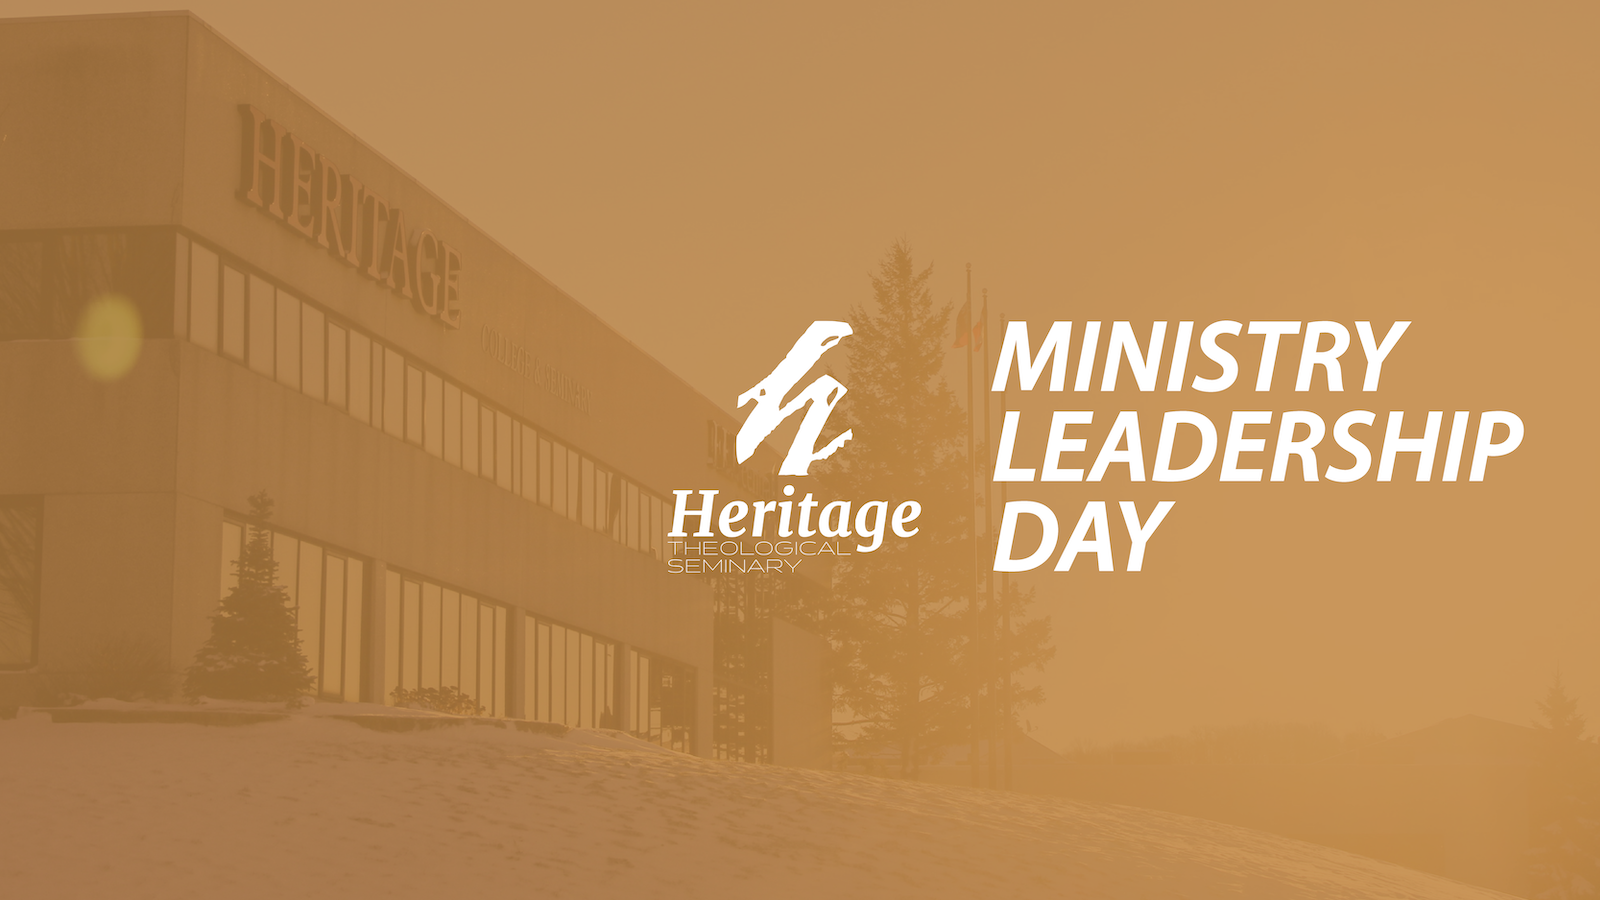 Ministry Leadership Day 2021 Welcomes Dr. Michael Pawelke